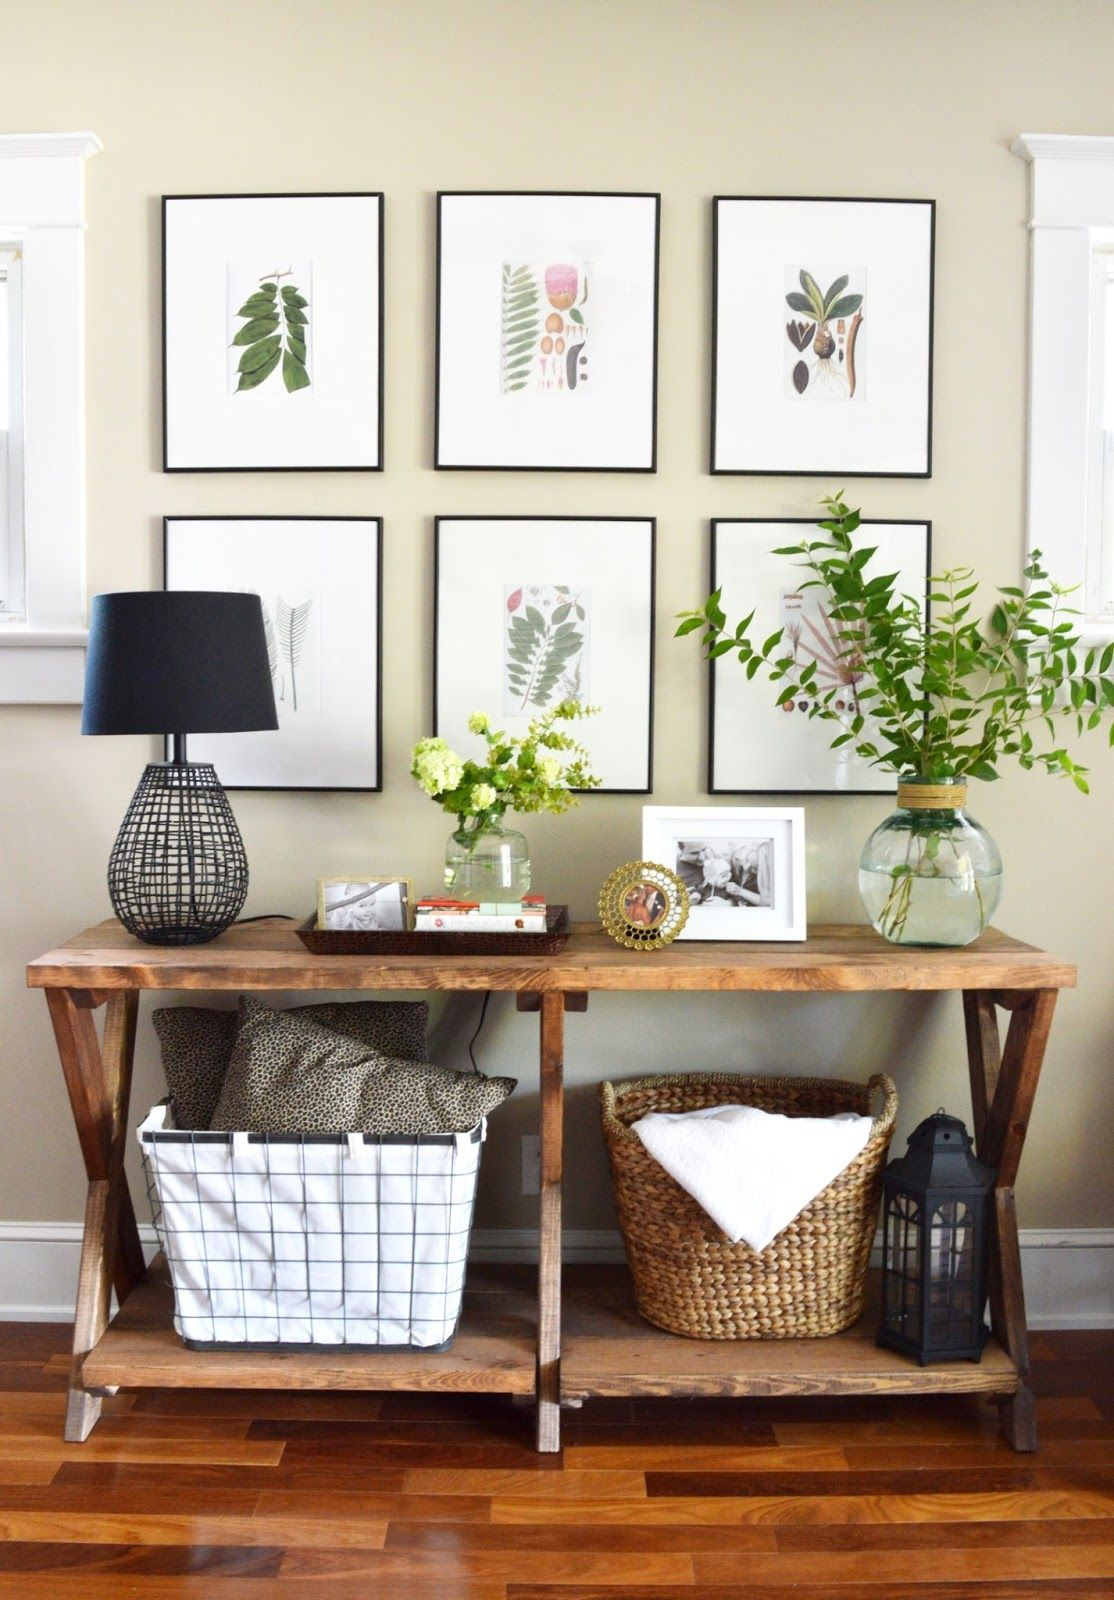 11 Tips for Styling Your Entryway Table | Stylish, Foyers and ...